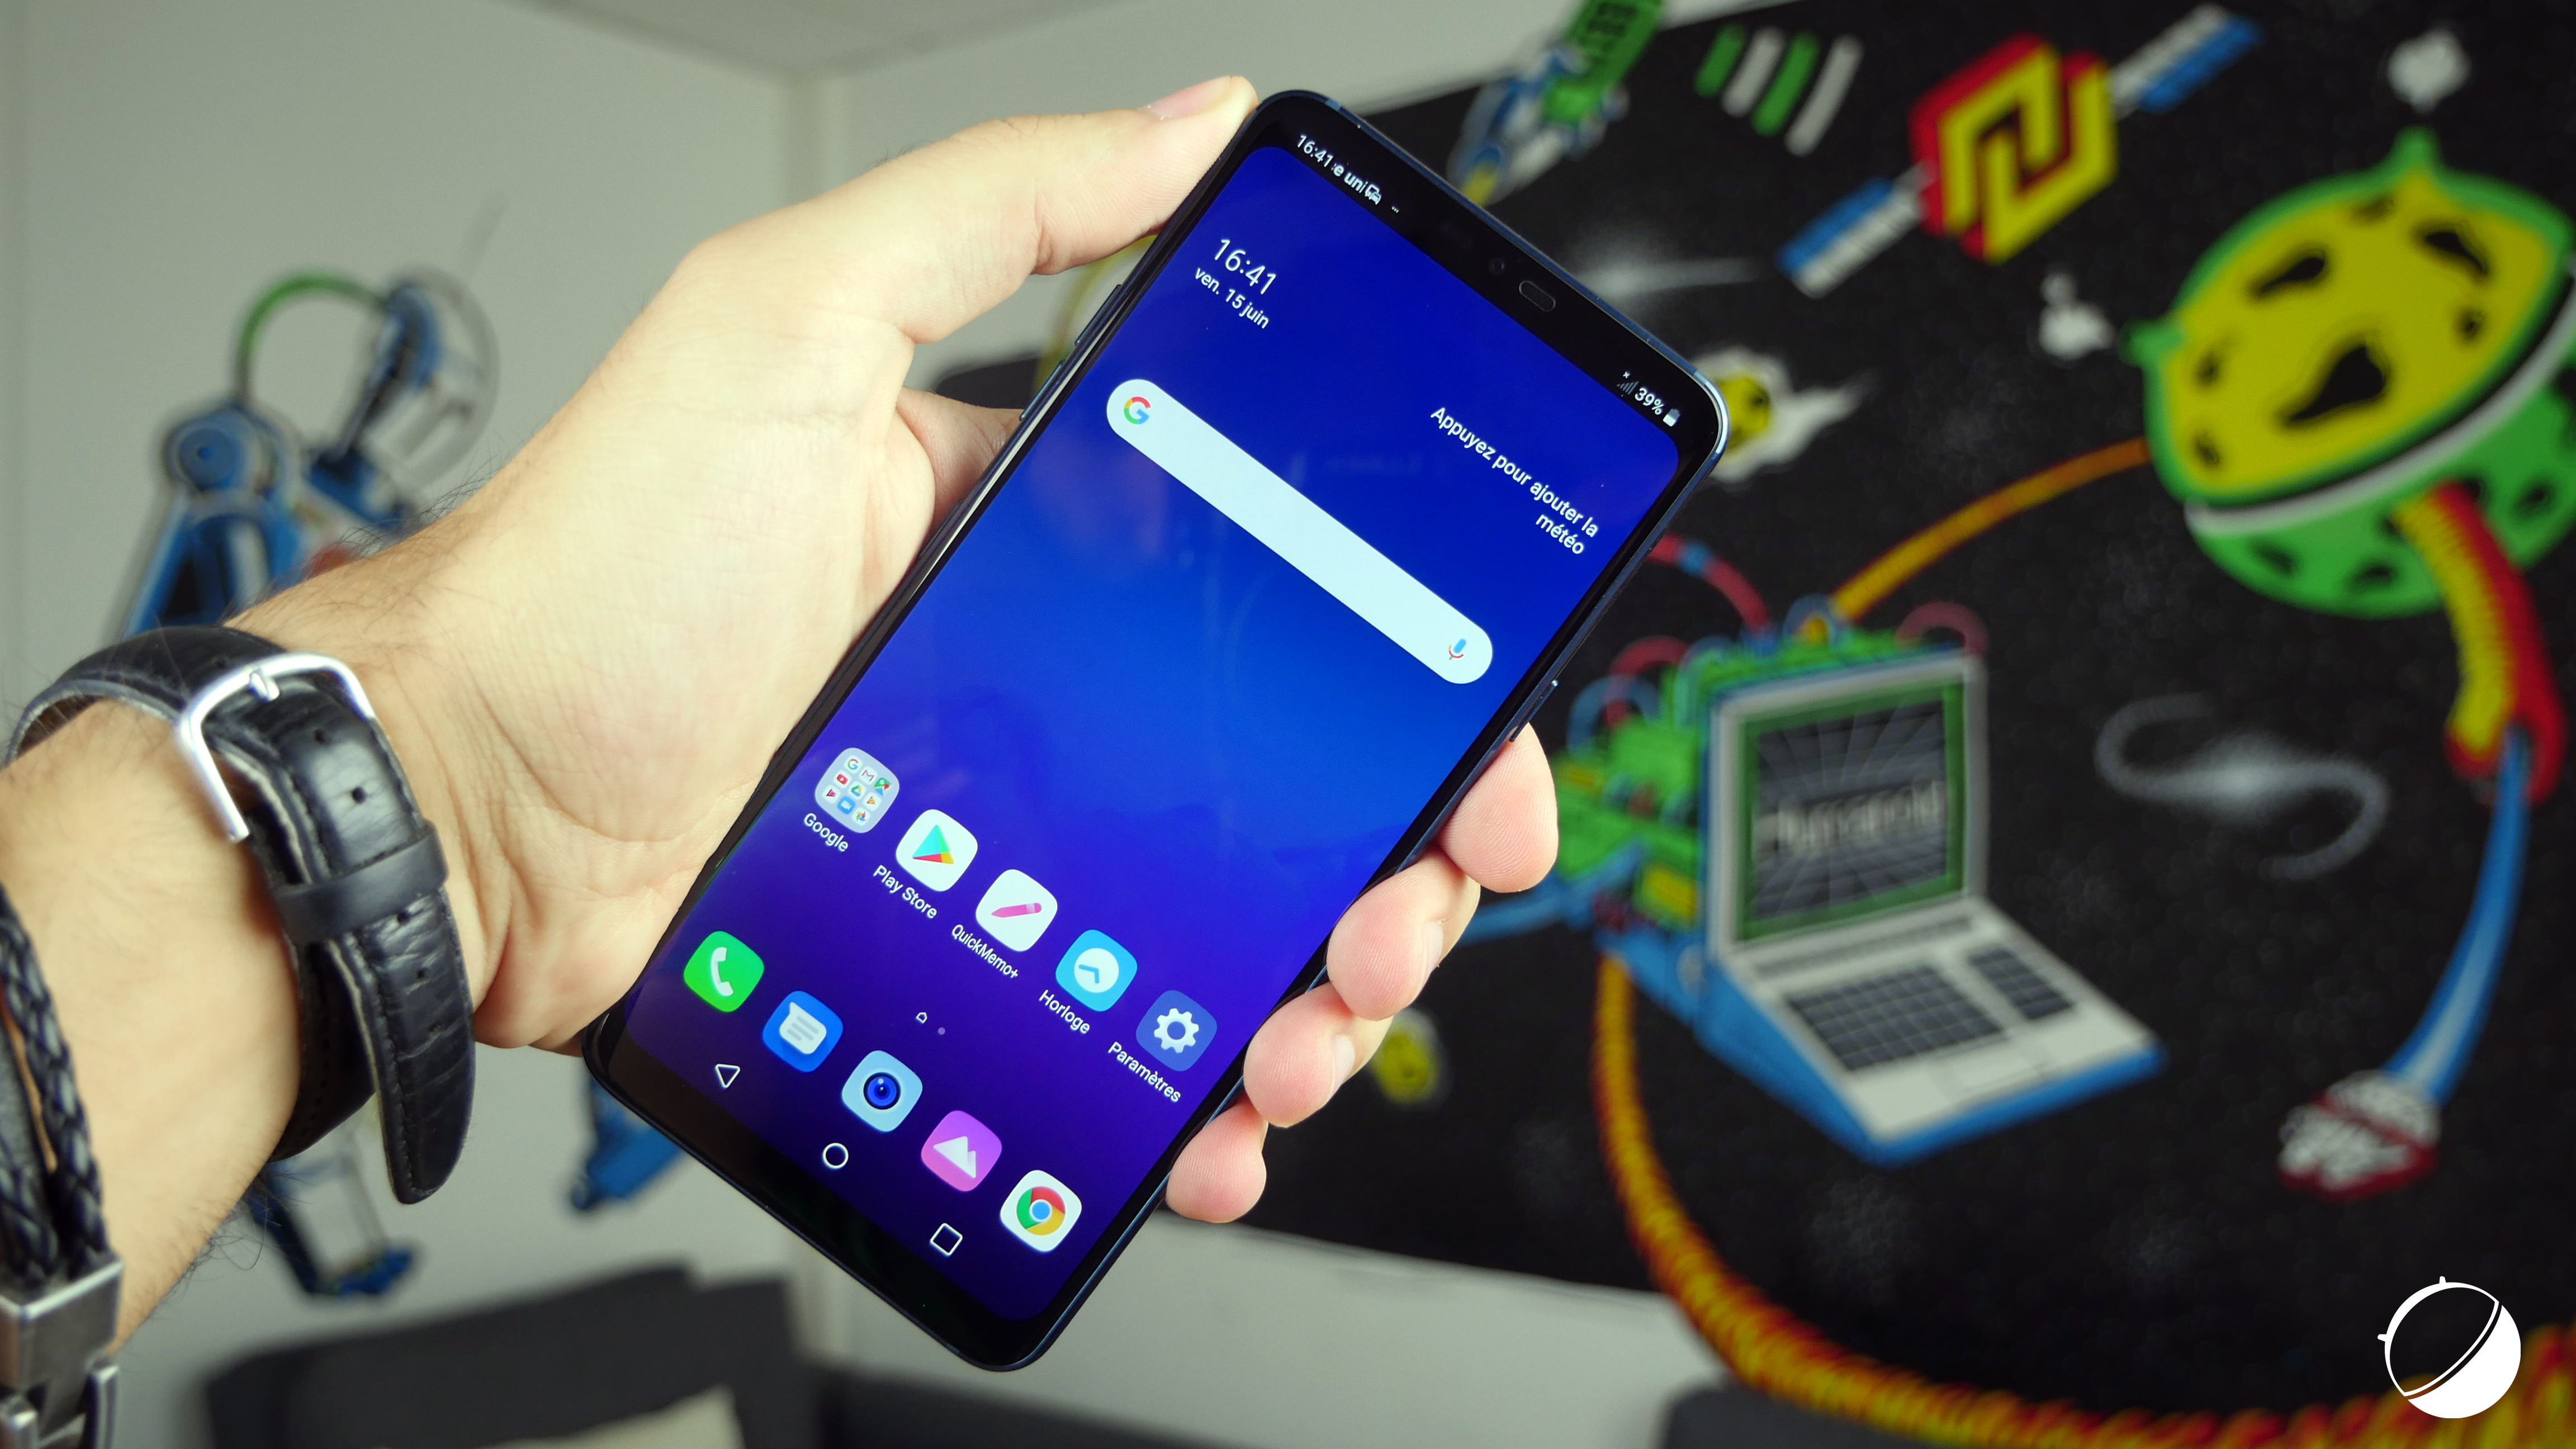 lg g7 thinq android 9.0 pie